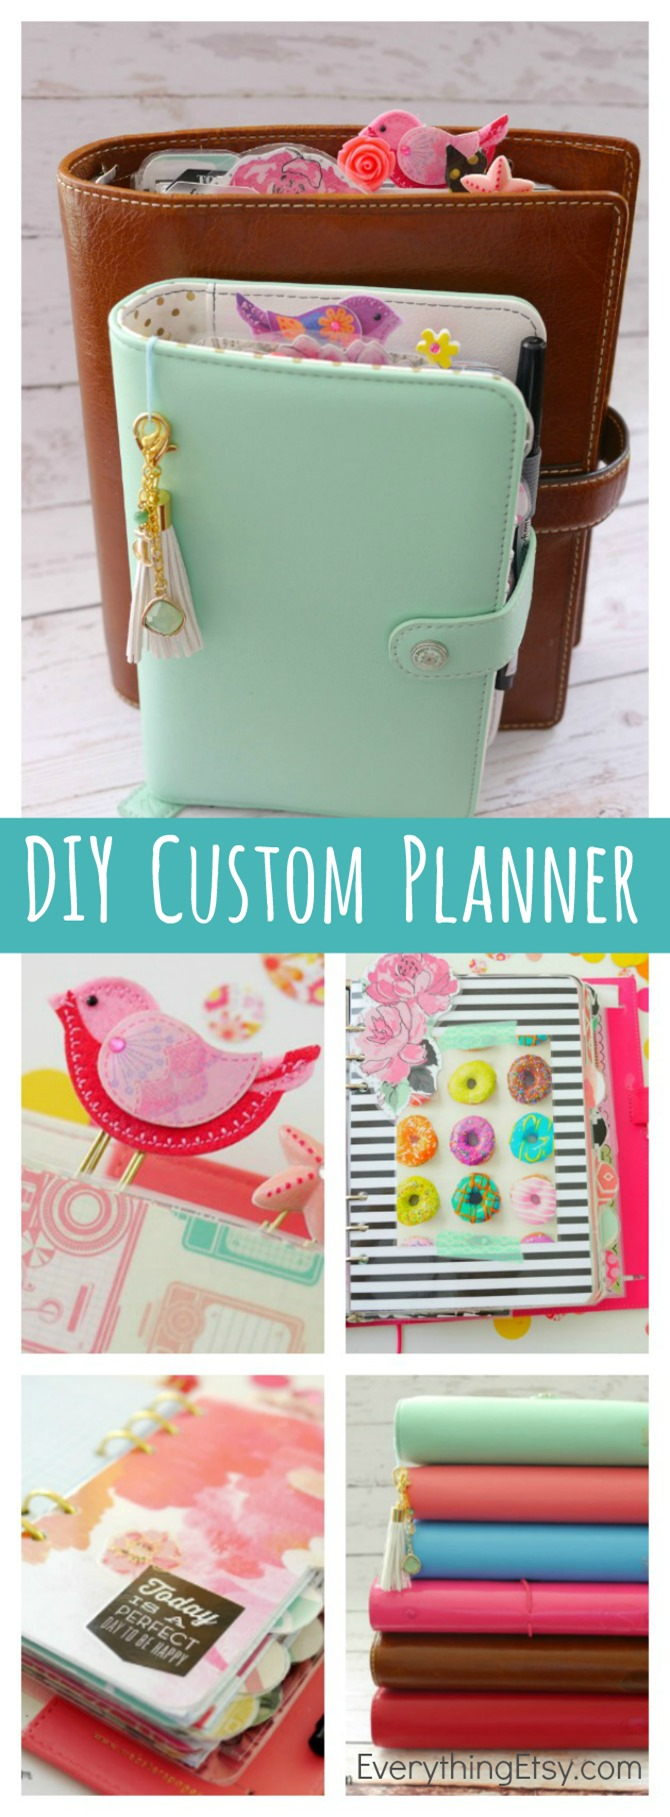 DIY Custom Planner - Get Organized in Style! EverythingEtsy.com